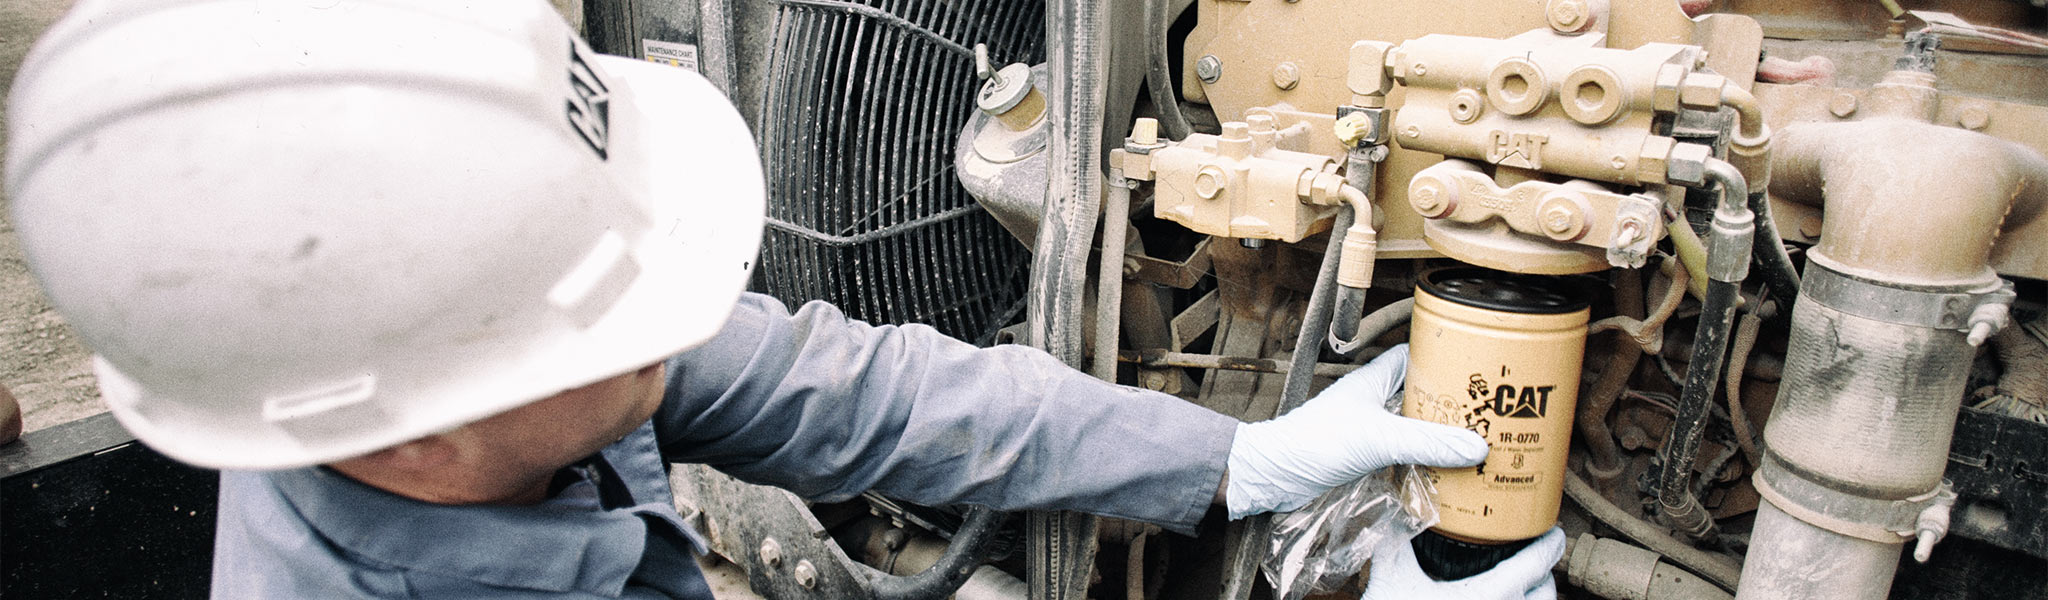 Your Cat dealer can offer a preventive maintenance program customized to your needs.